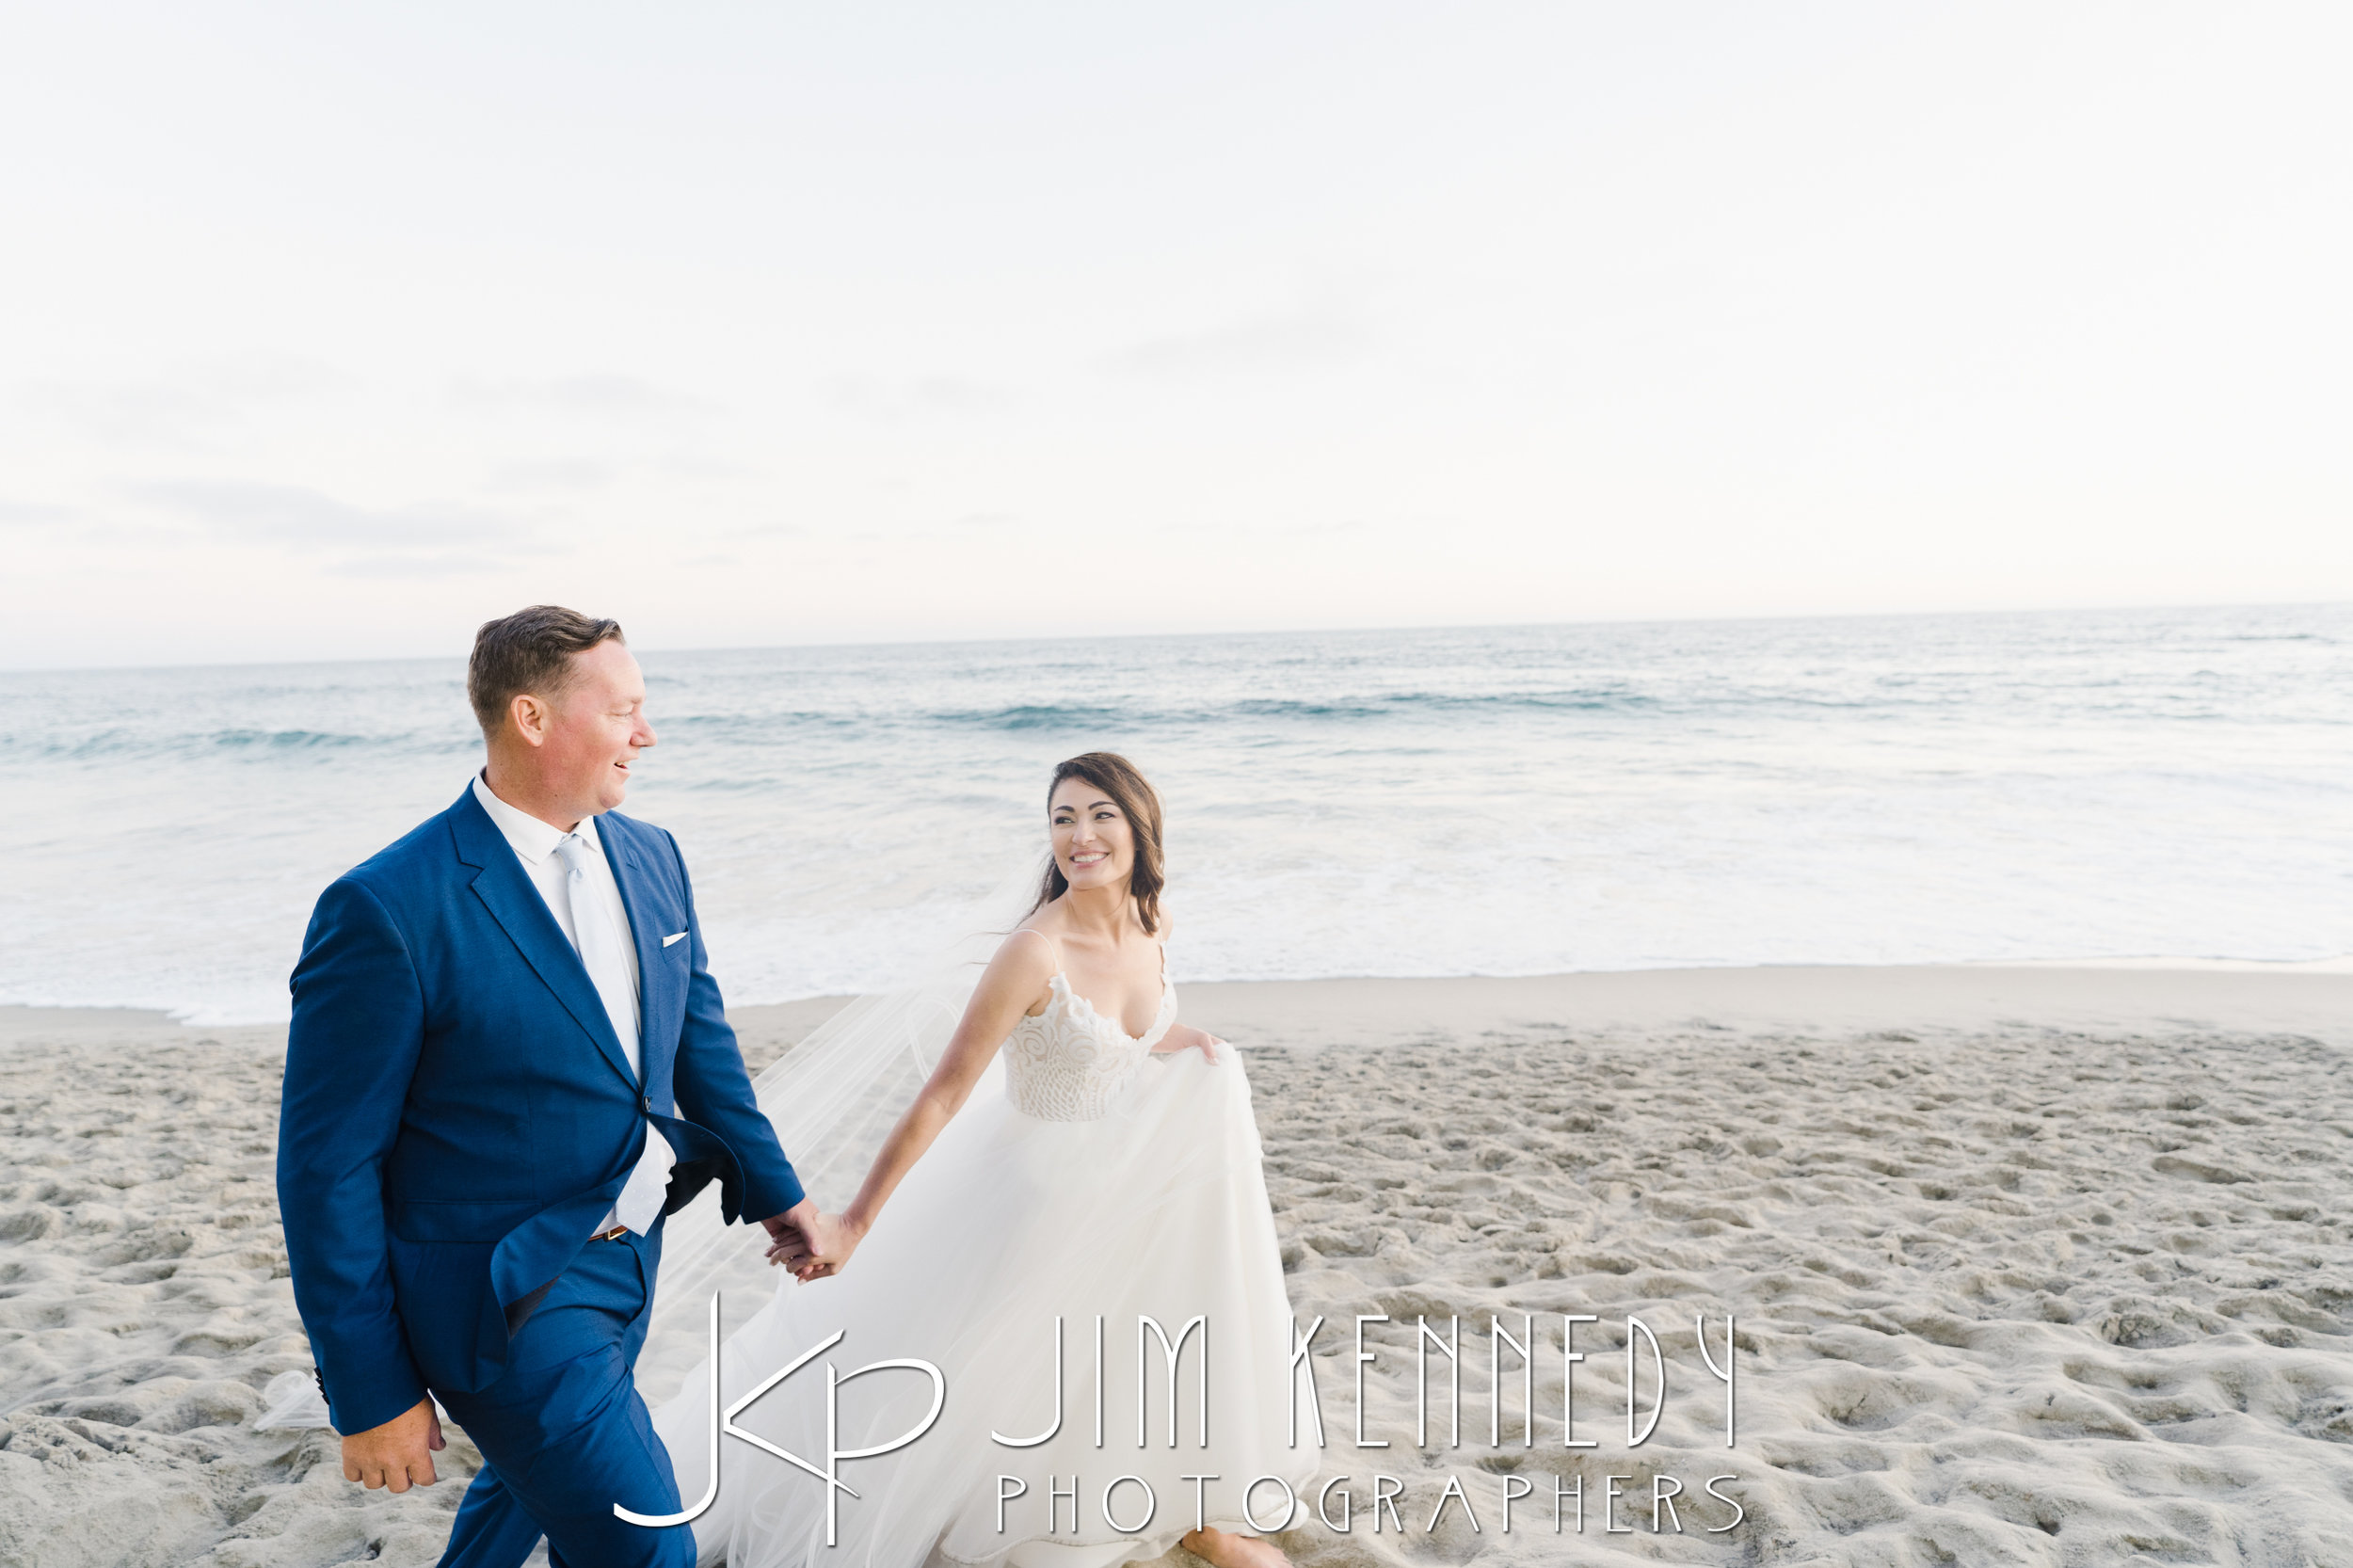 surf-and-sand-resort-wedding-erica-glenn_0206.JPG